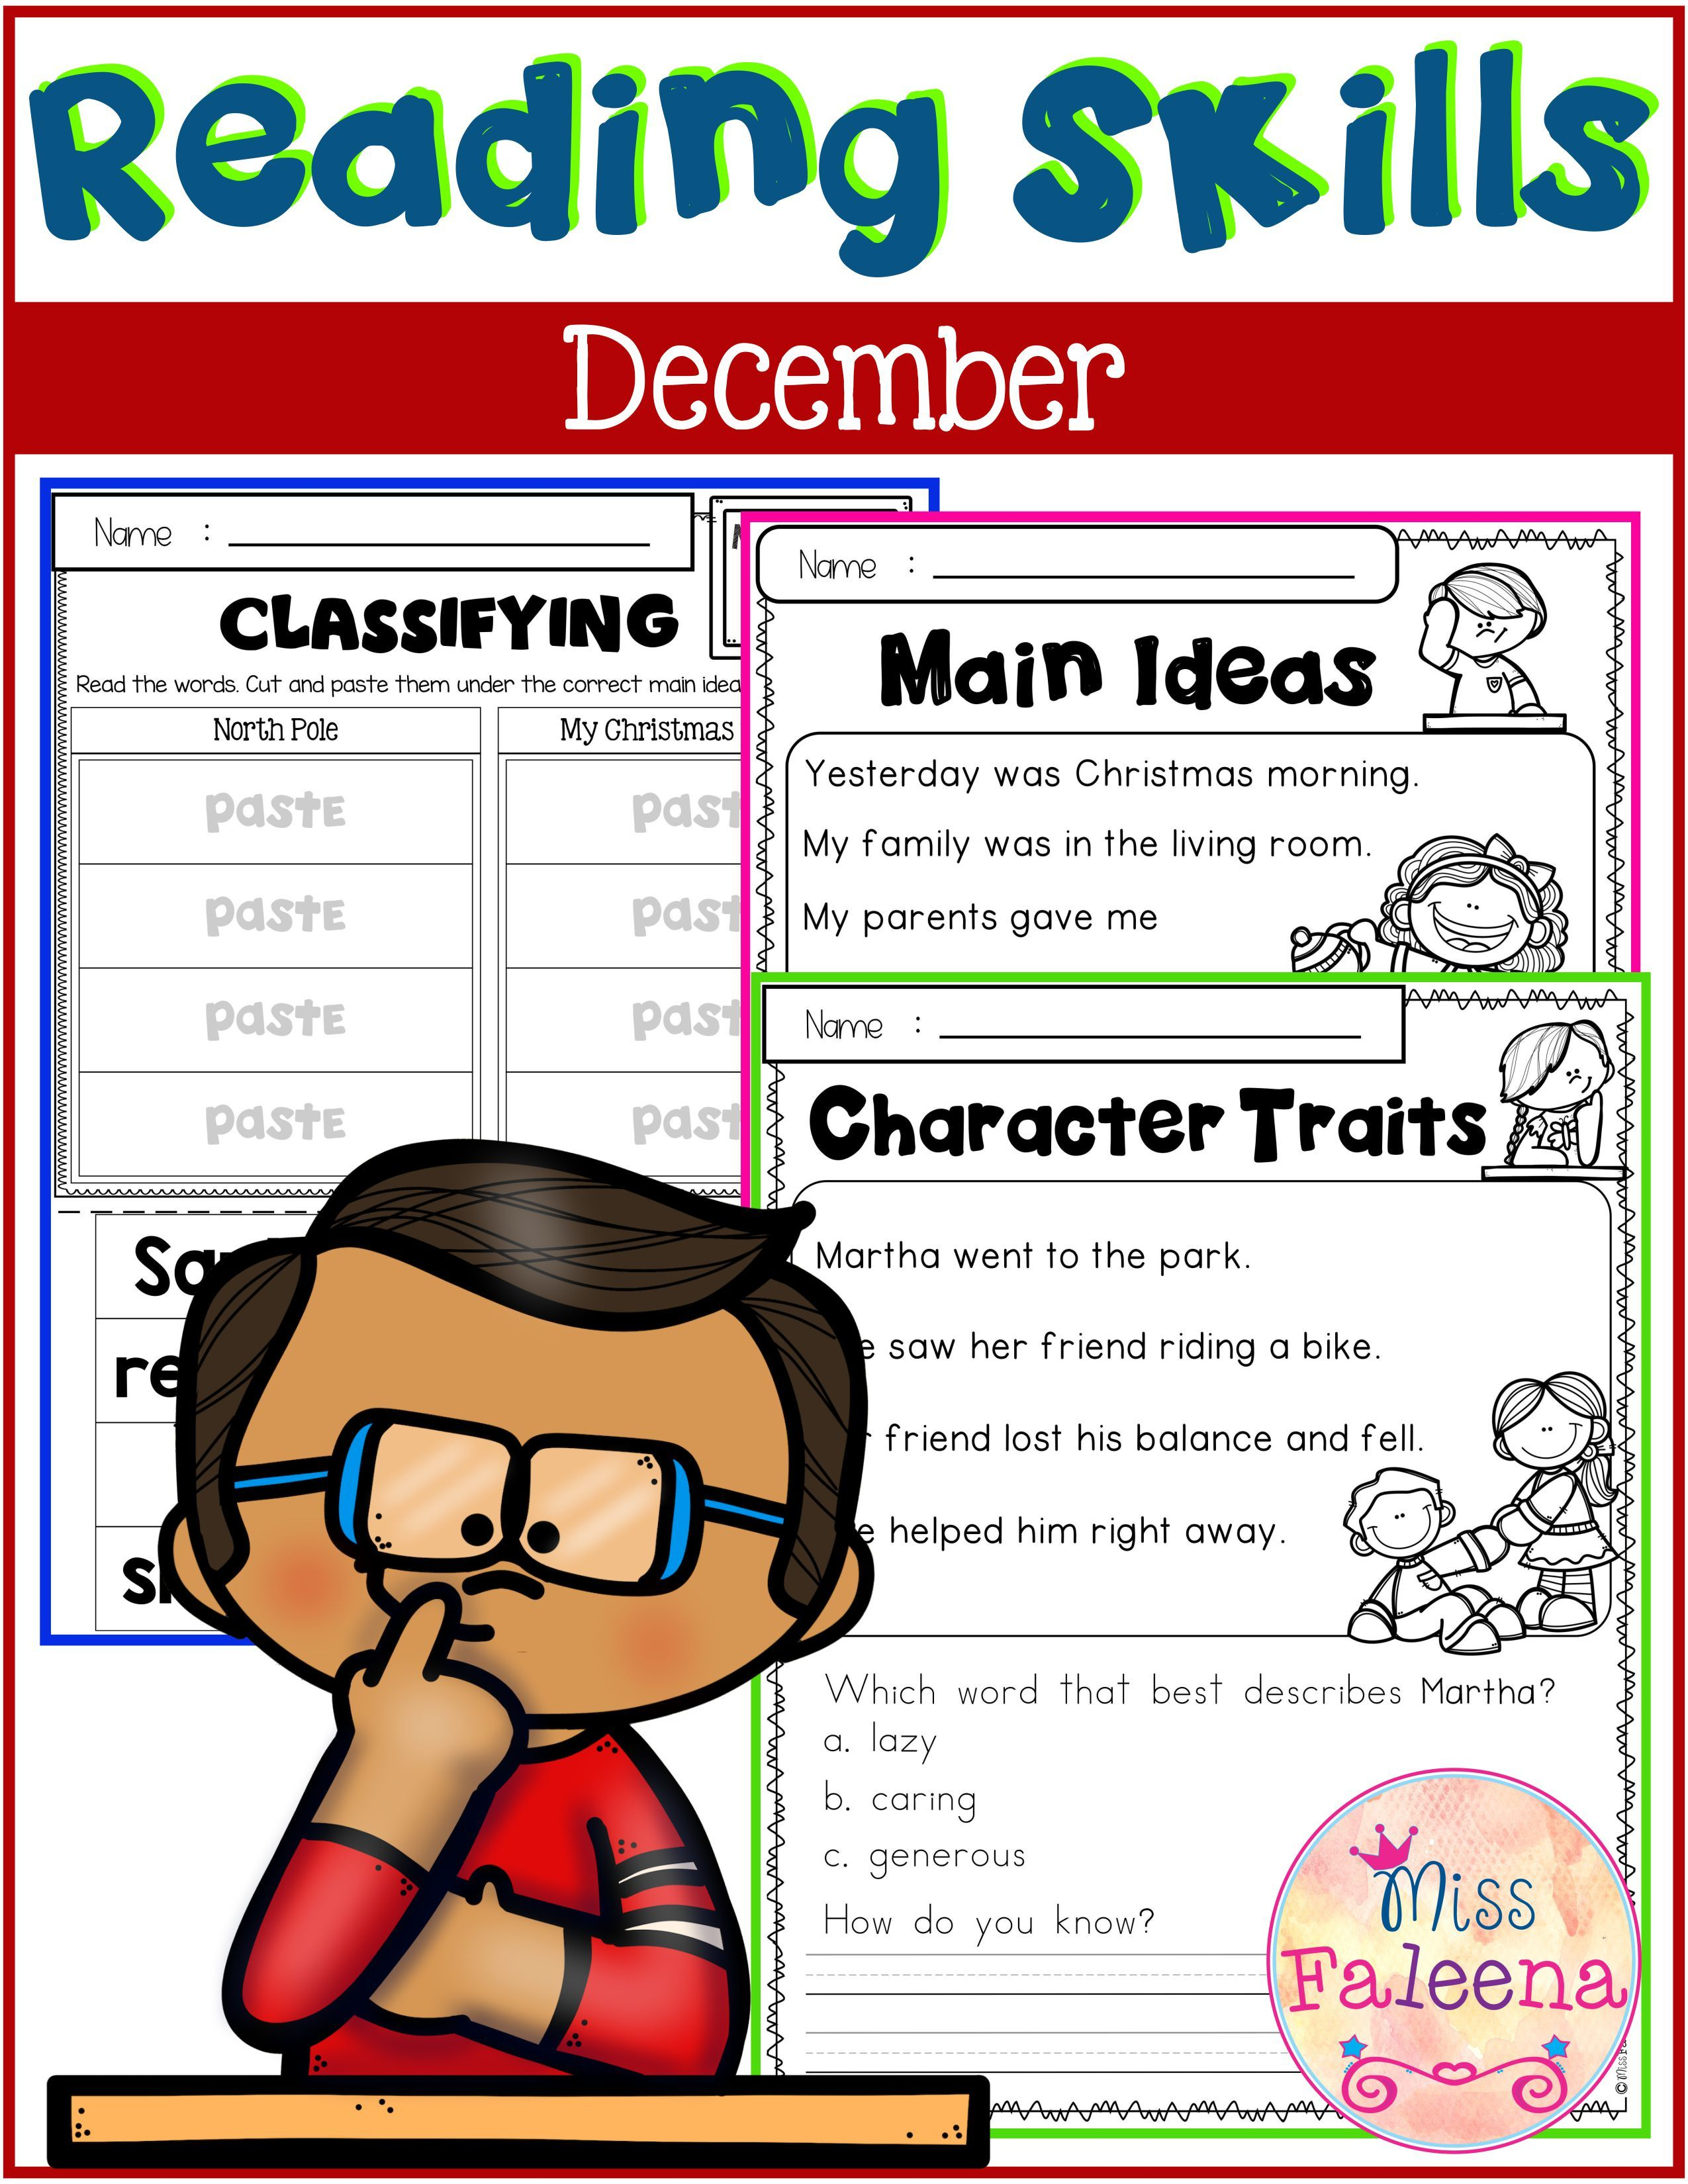 December Reading Skills With Images